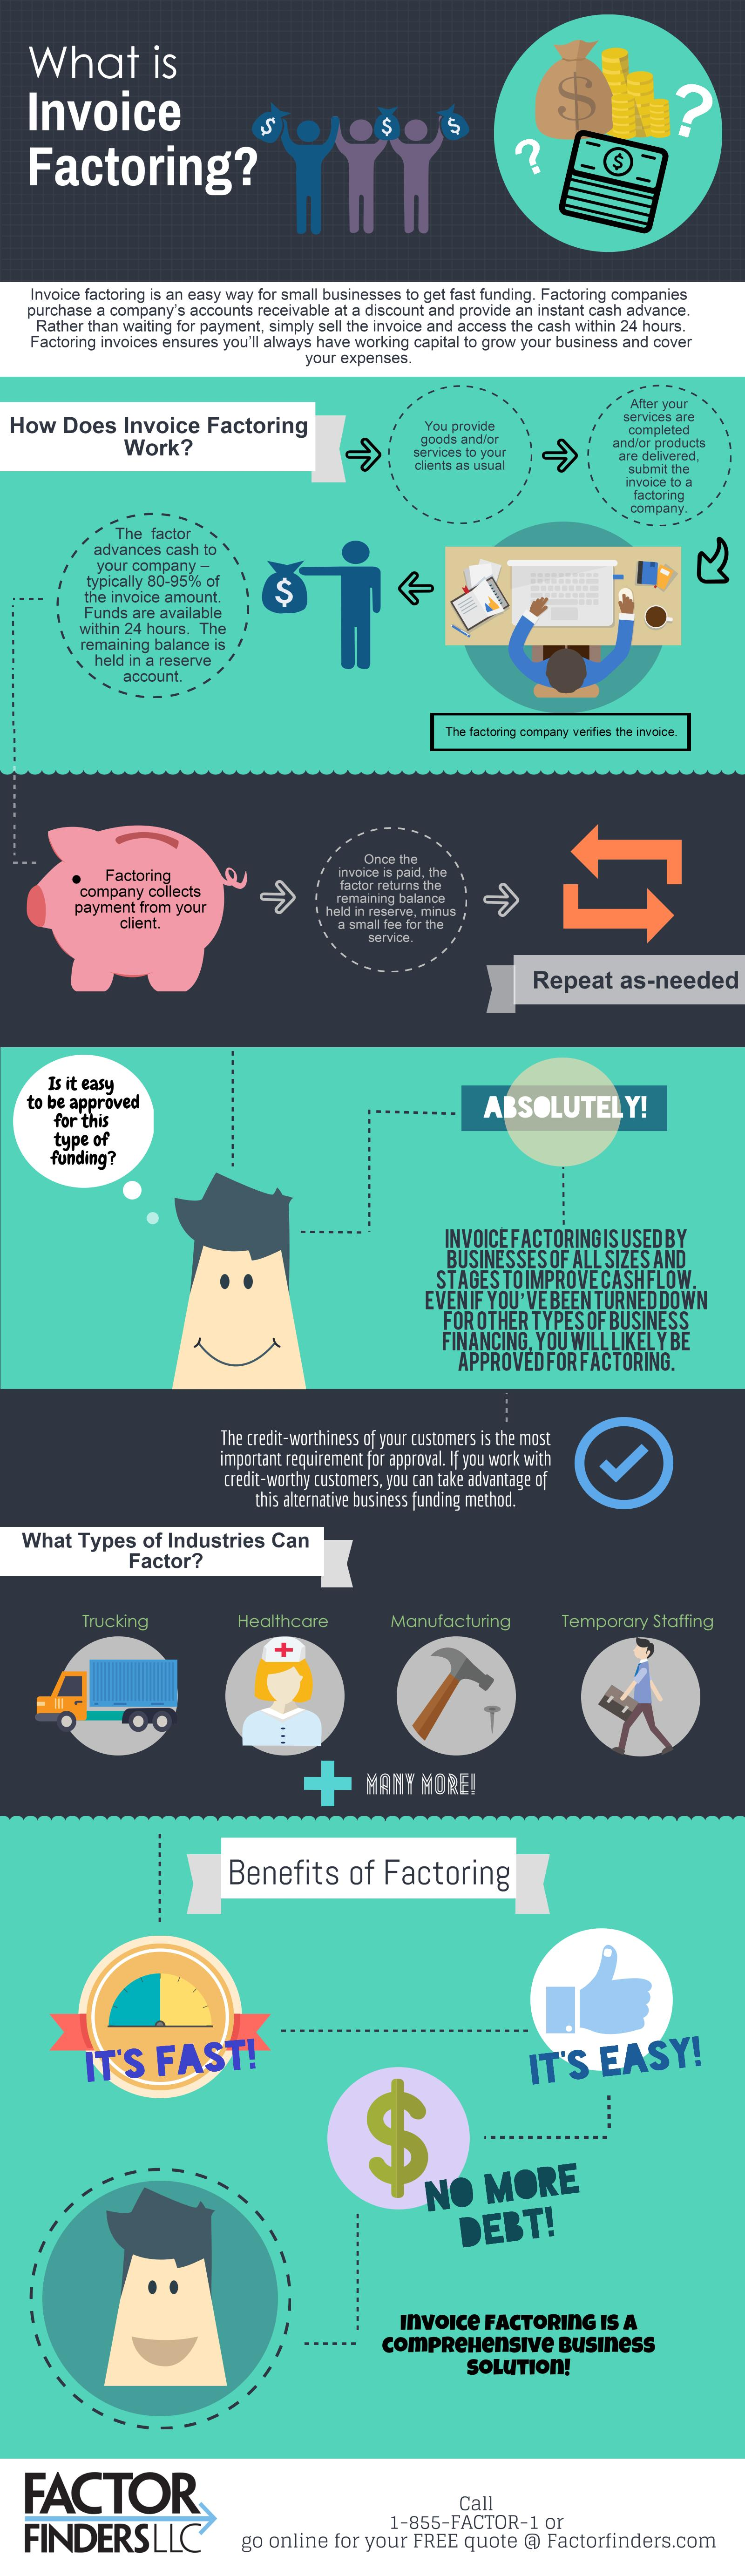 What Is Invoice Factoring Infographic Portal - What is invoice factoring